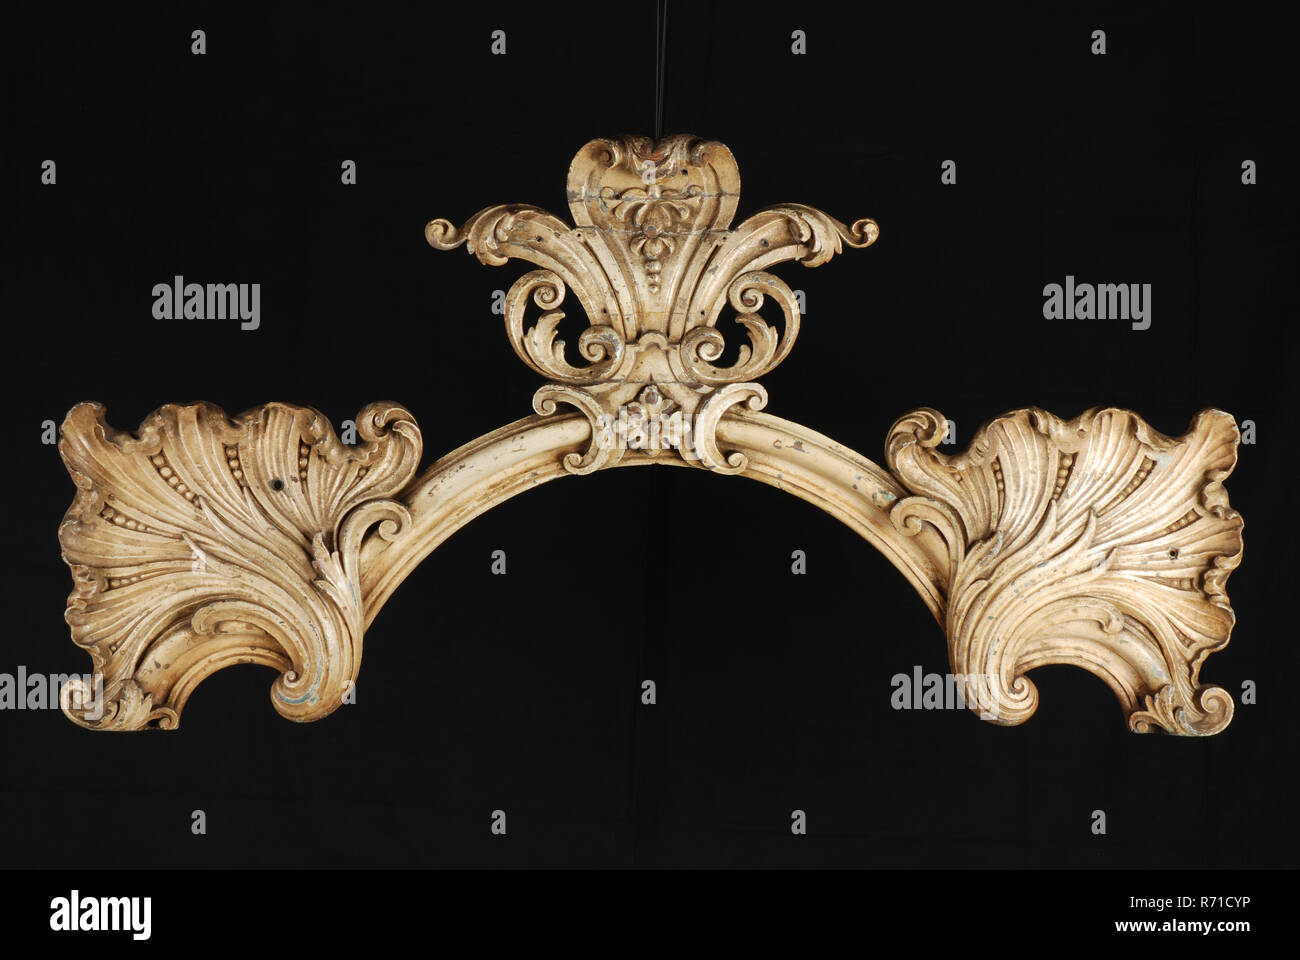 Carved wooden arched profile with three palmetal ornaments